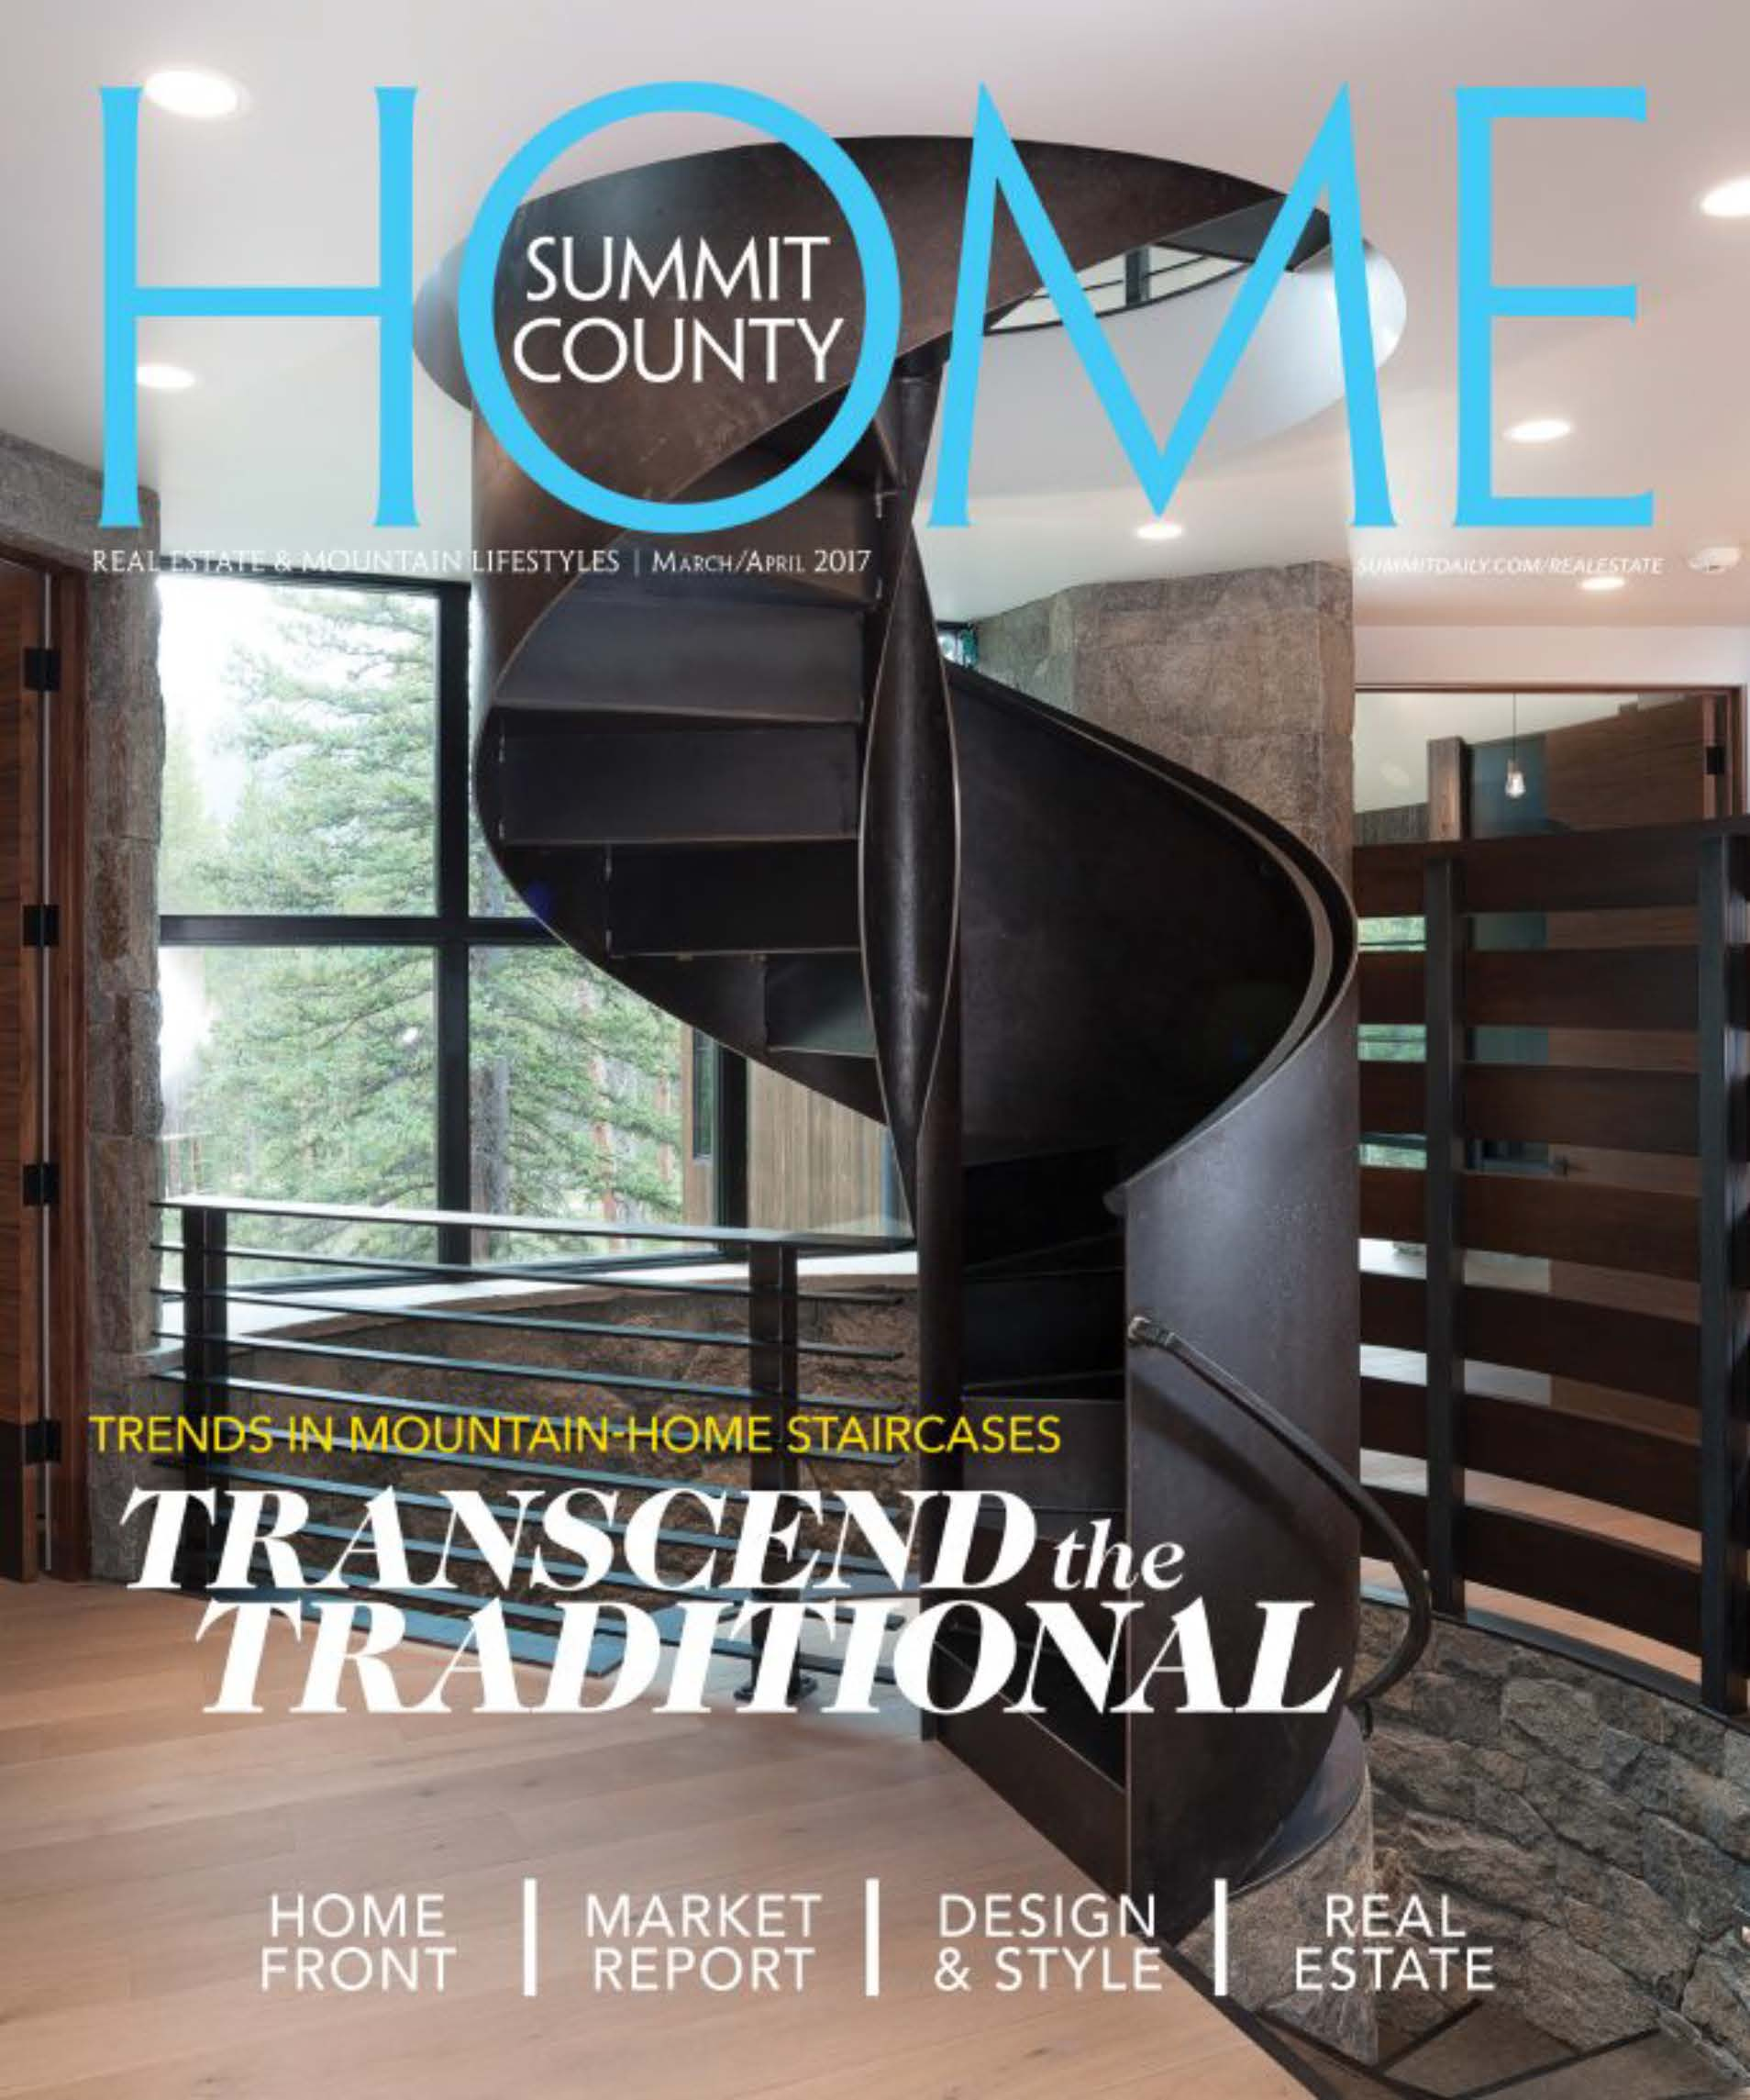 2017-04 - Summit County Home - Unsere Treppe ziert das Magazin-Cover